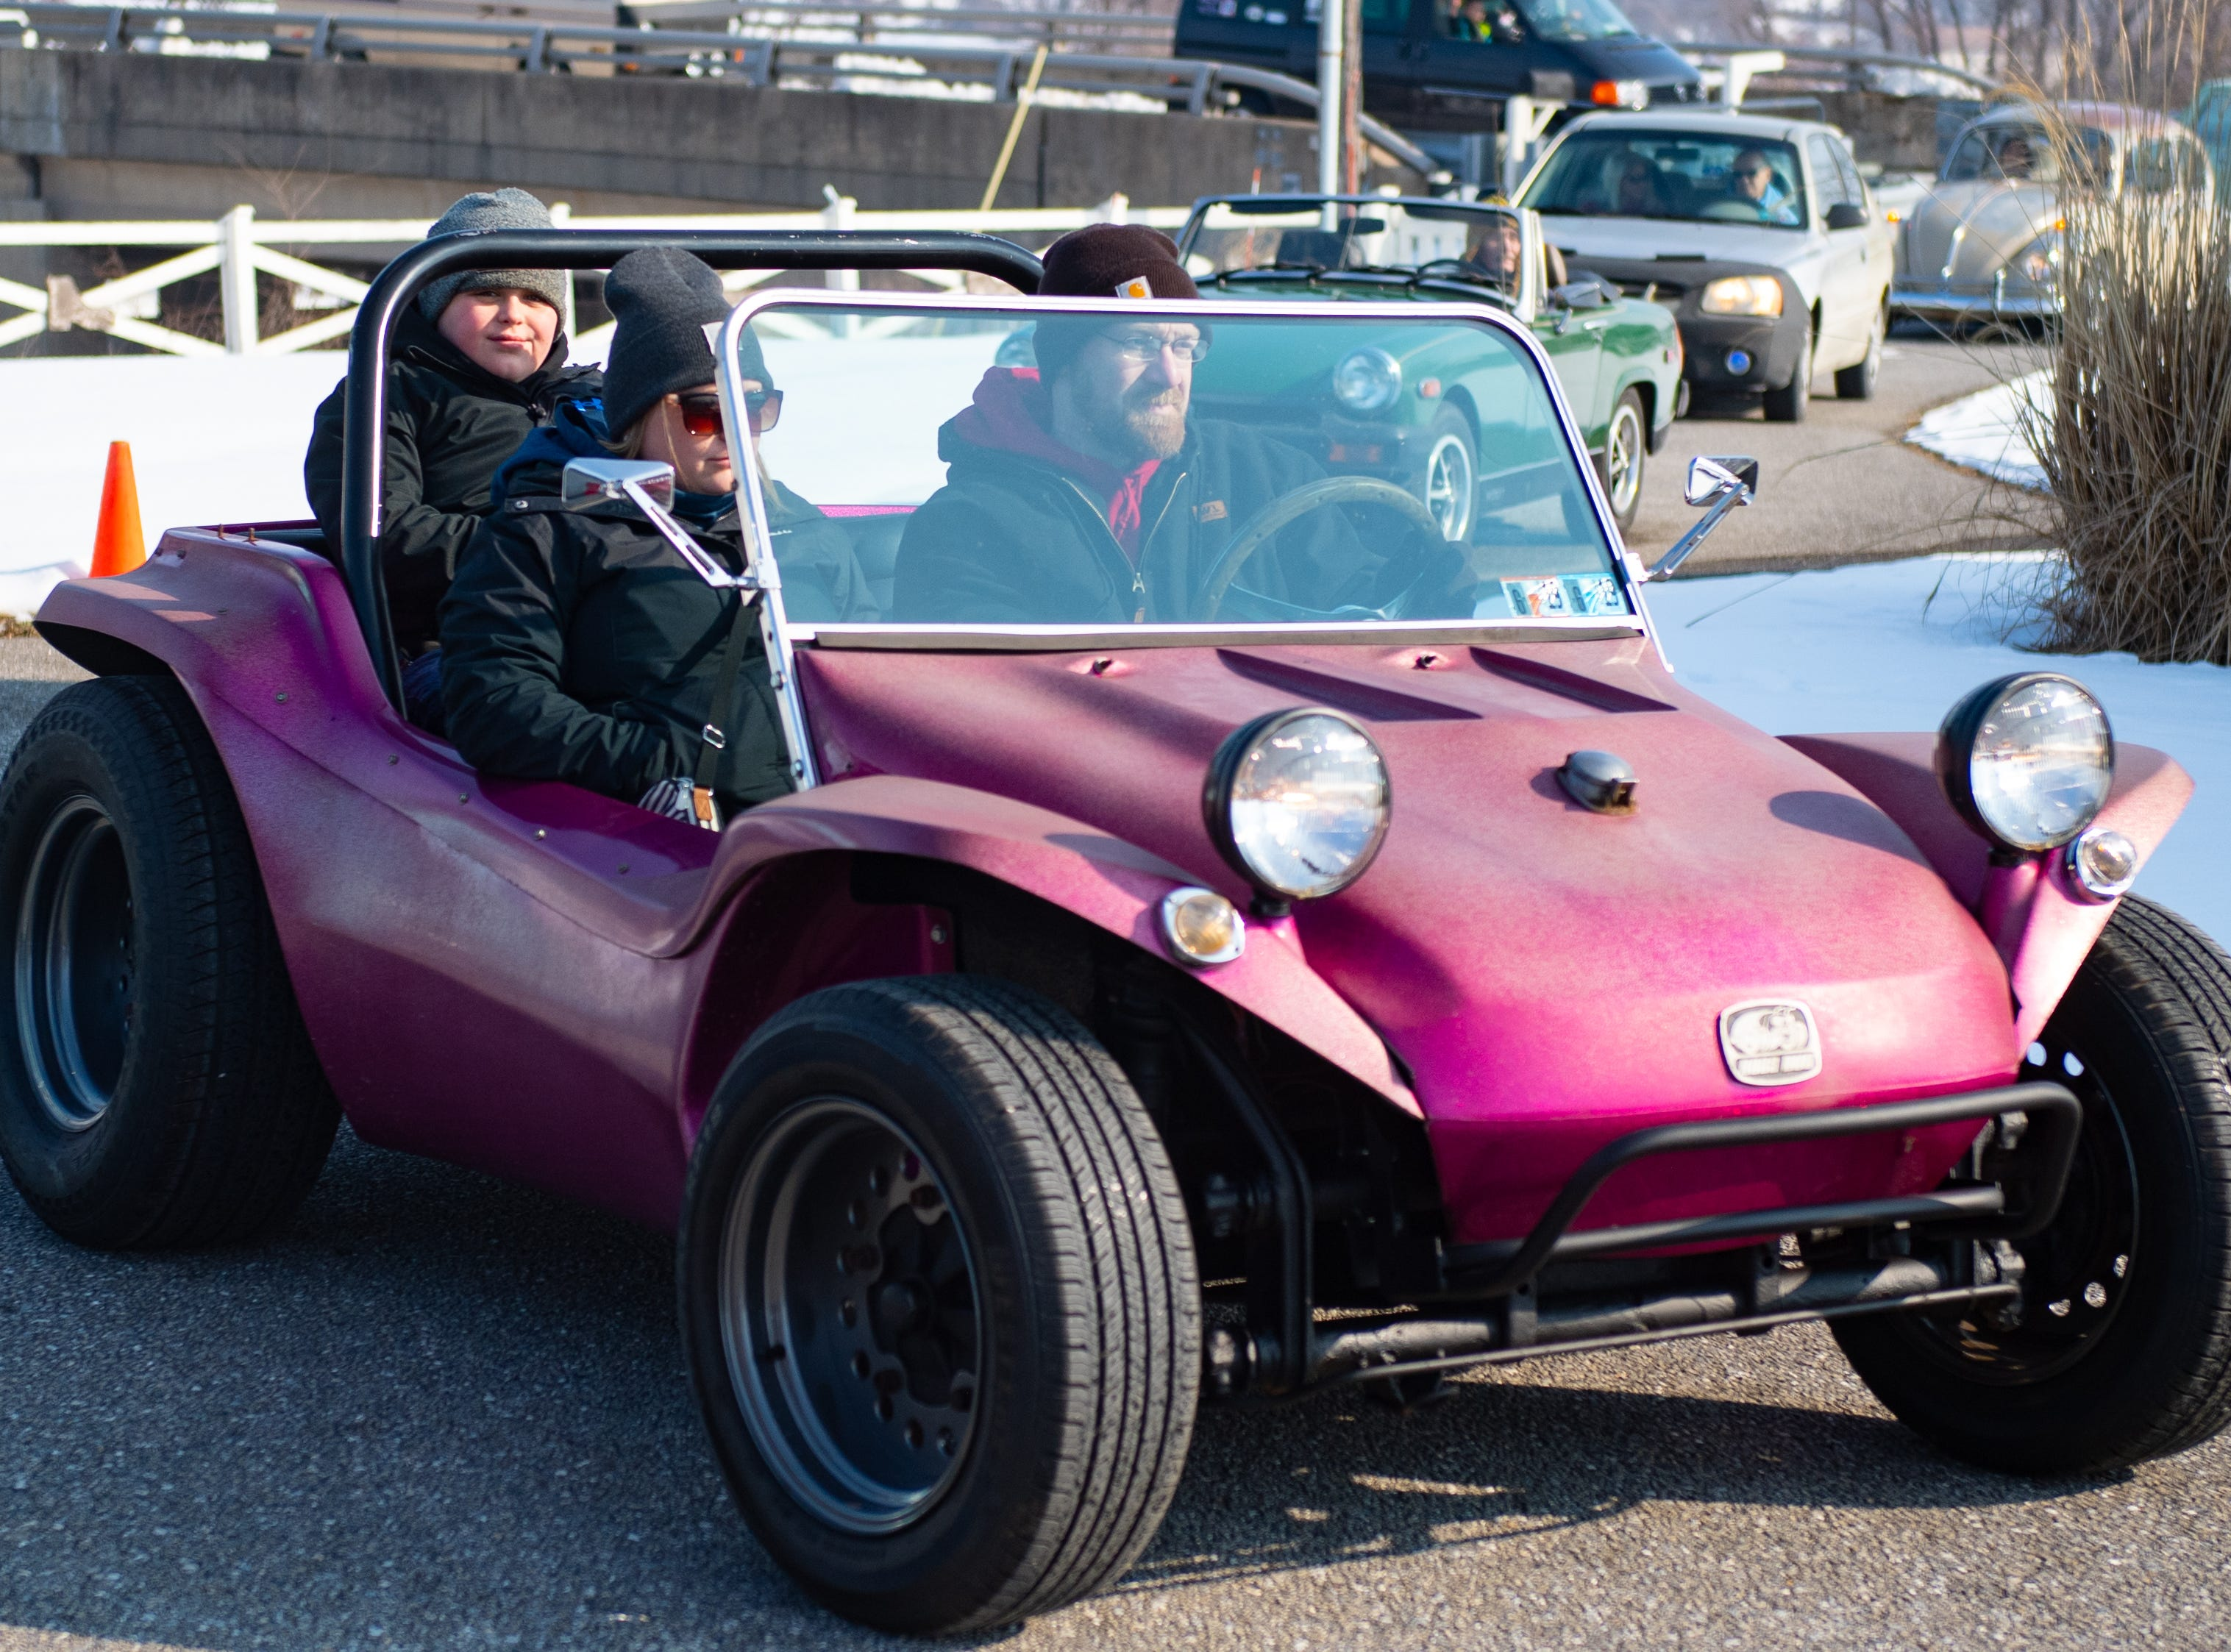 Some drivers brought unique cars to the celebration of Melanie Schmuck's life, Saturday, March 9, 2019.